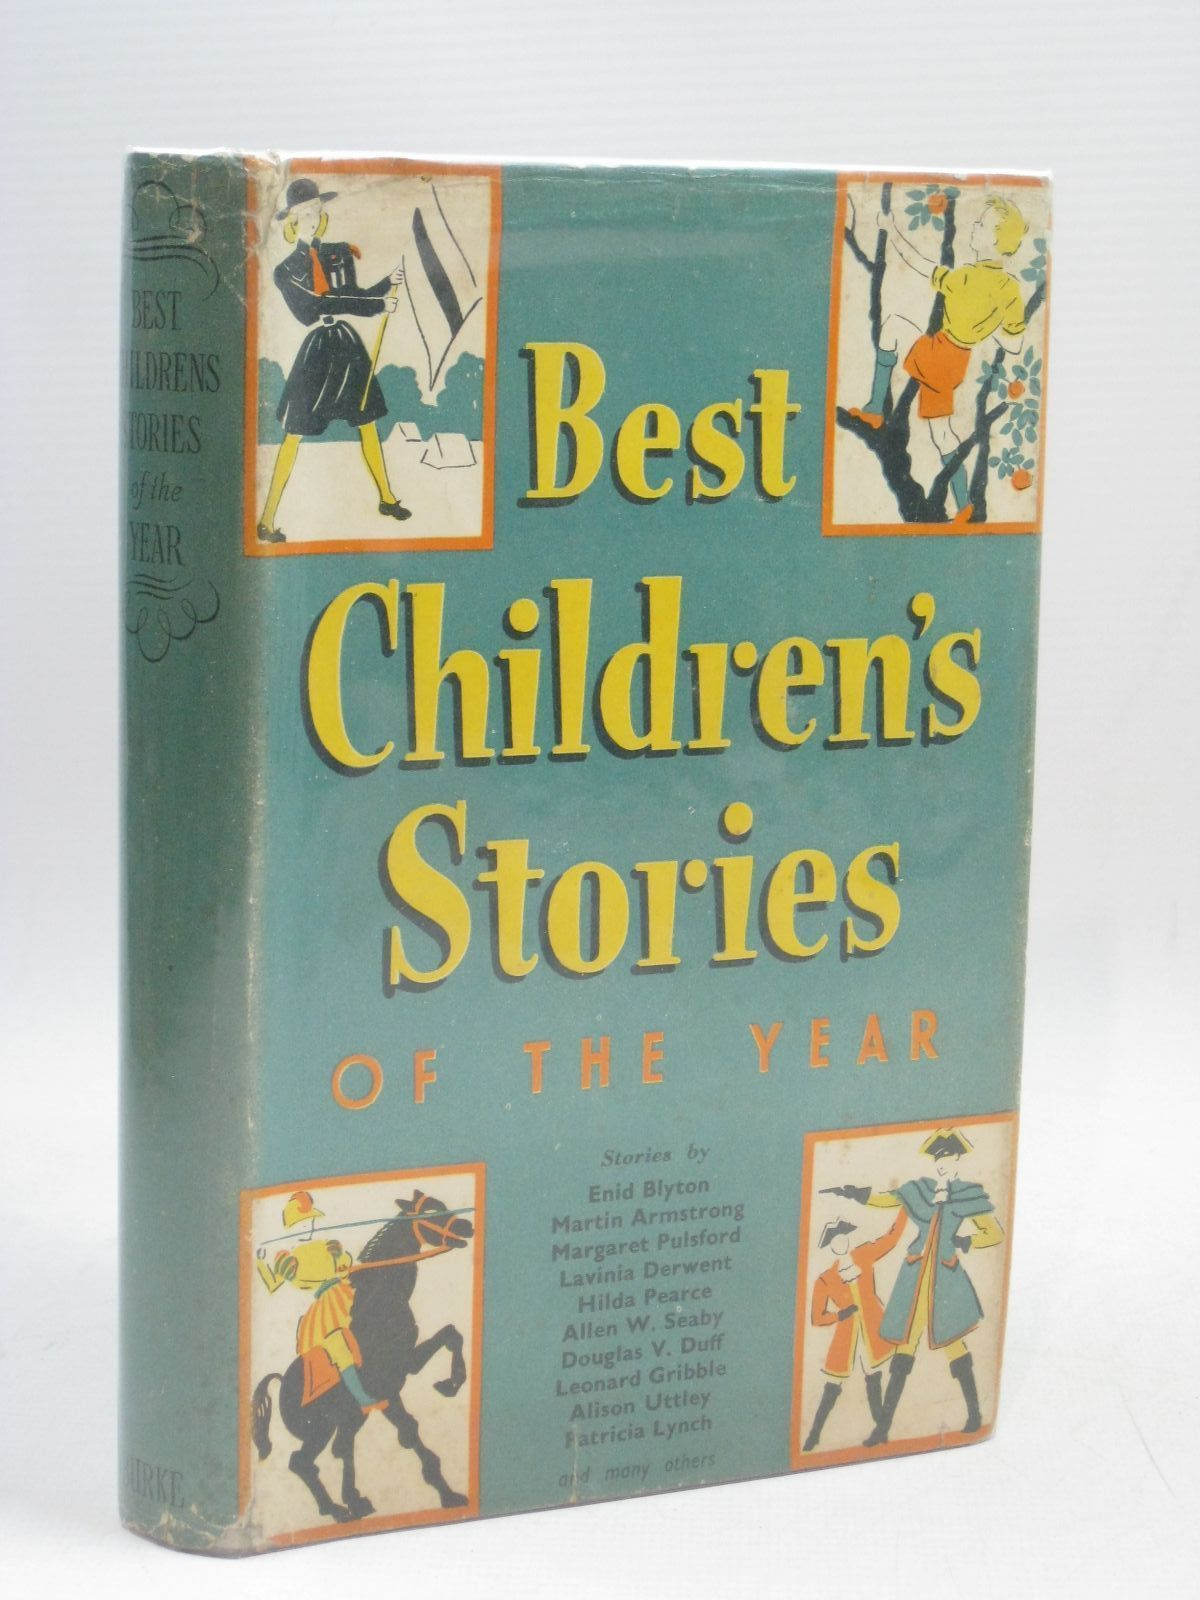 Photo of THE BEST CHILDREN'S STORIES OF THE YEAR written by Gribble, Leonard Pearce, Hilda Blyton, Enid Uttley, Alison published by Burke Publishing Company Ltd. (STOCK CODE: 1506109)  for sale by Stella & Rose's Books